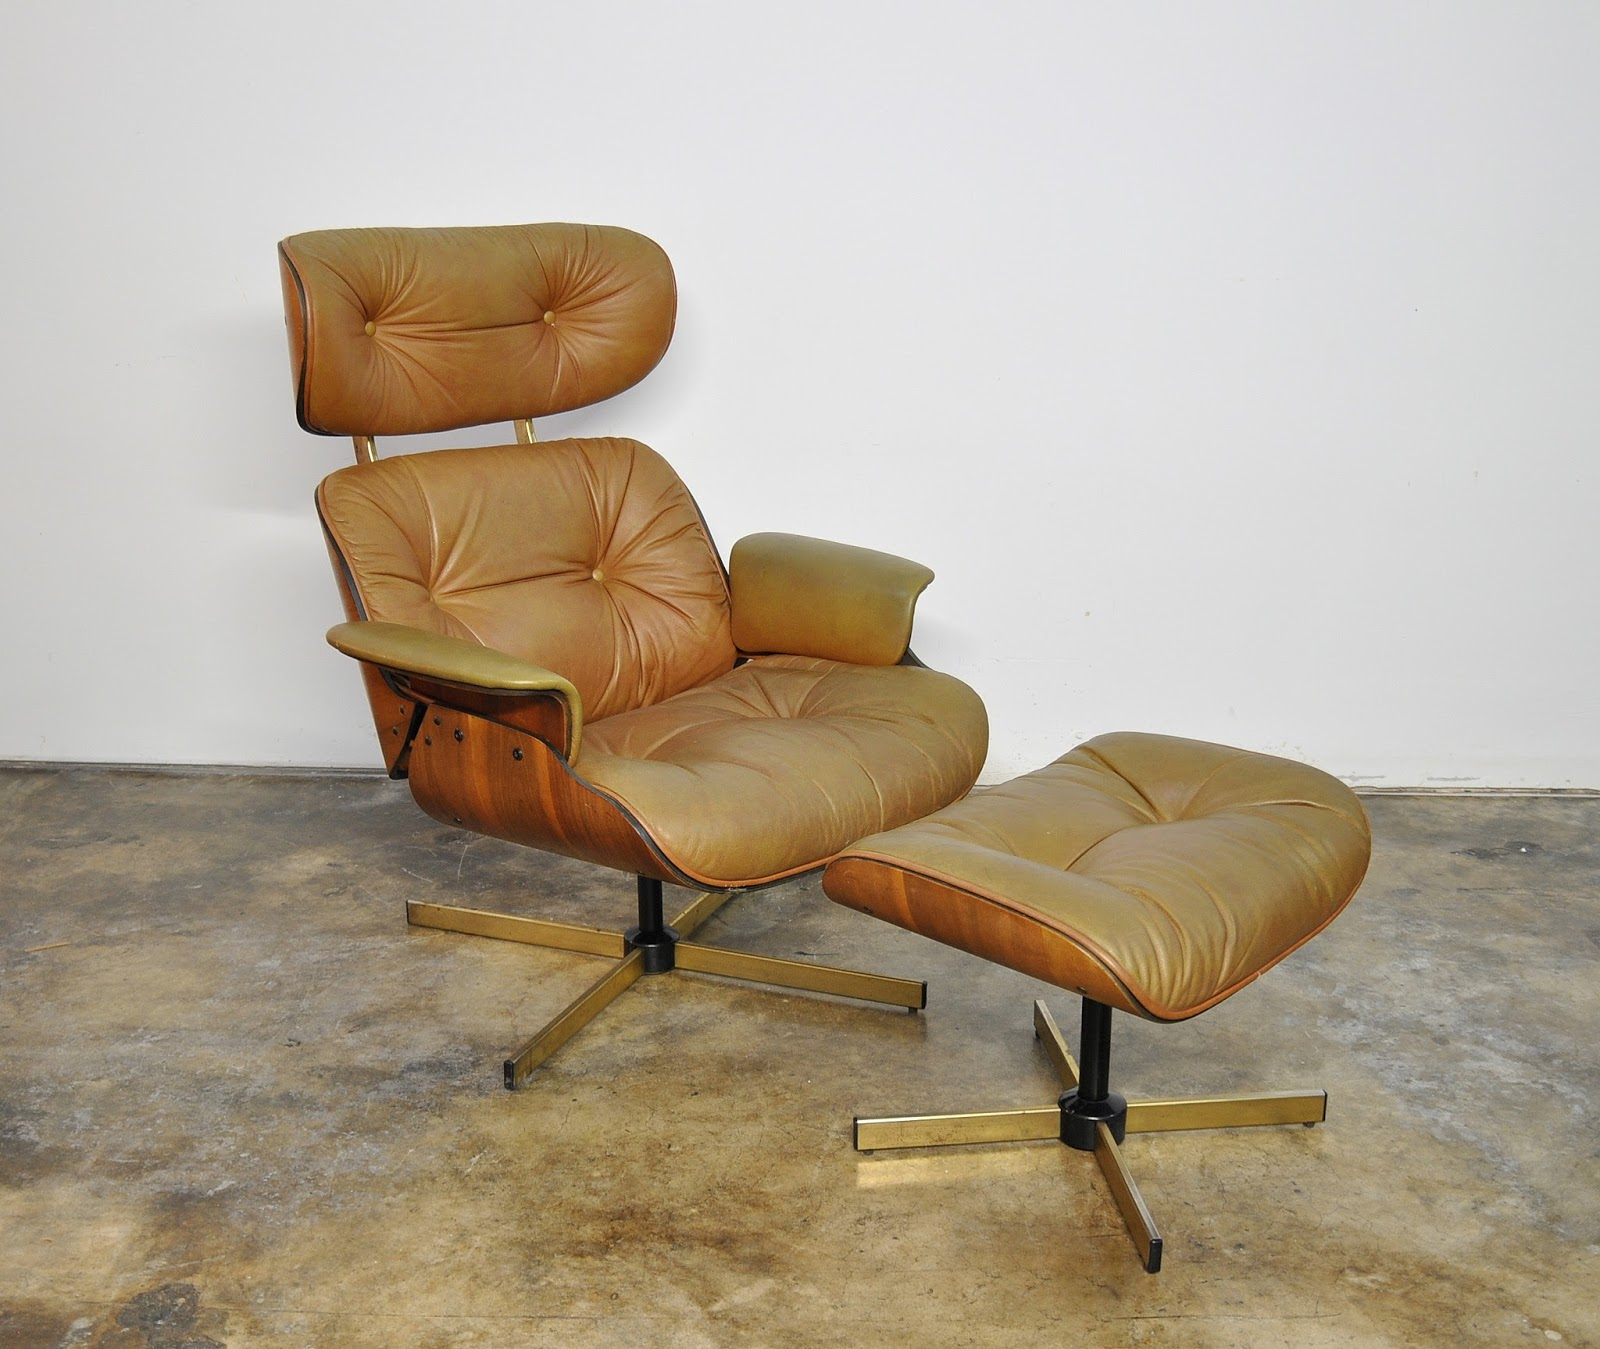 selig plycraft lounge chair parts 2 chairs and table set living room eames home furniture